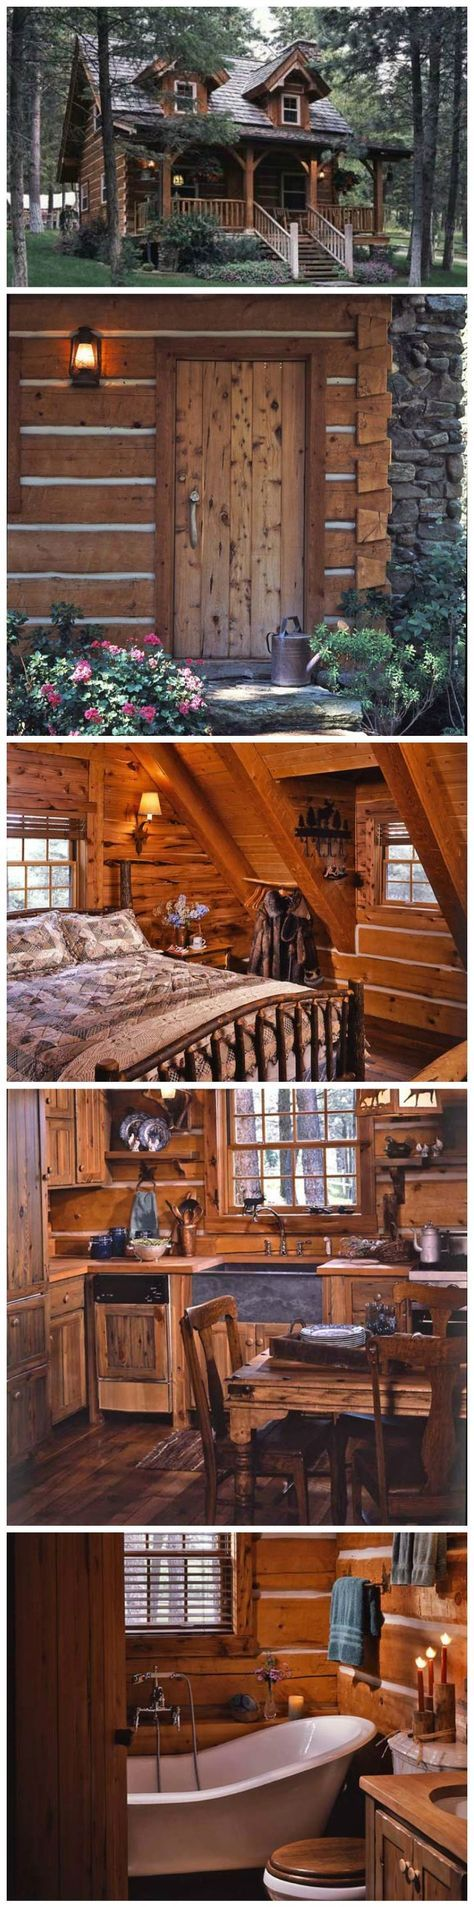 Best 25+ Mountain home id ideas on Pinterest | Cabins in the ...